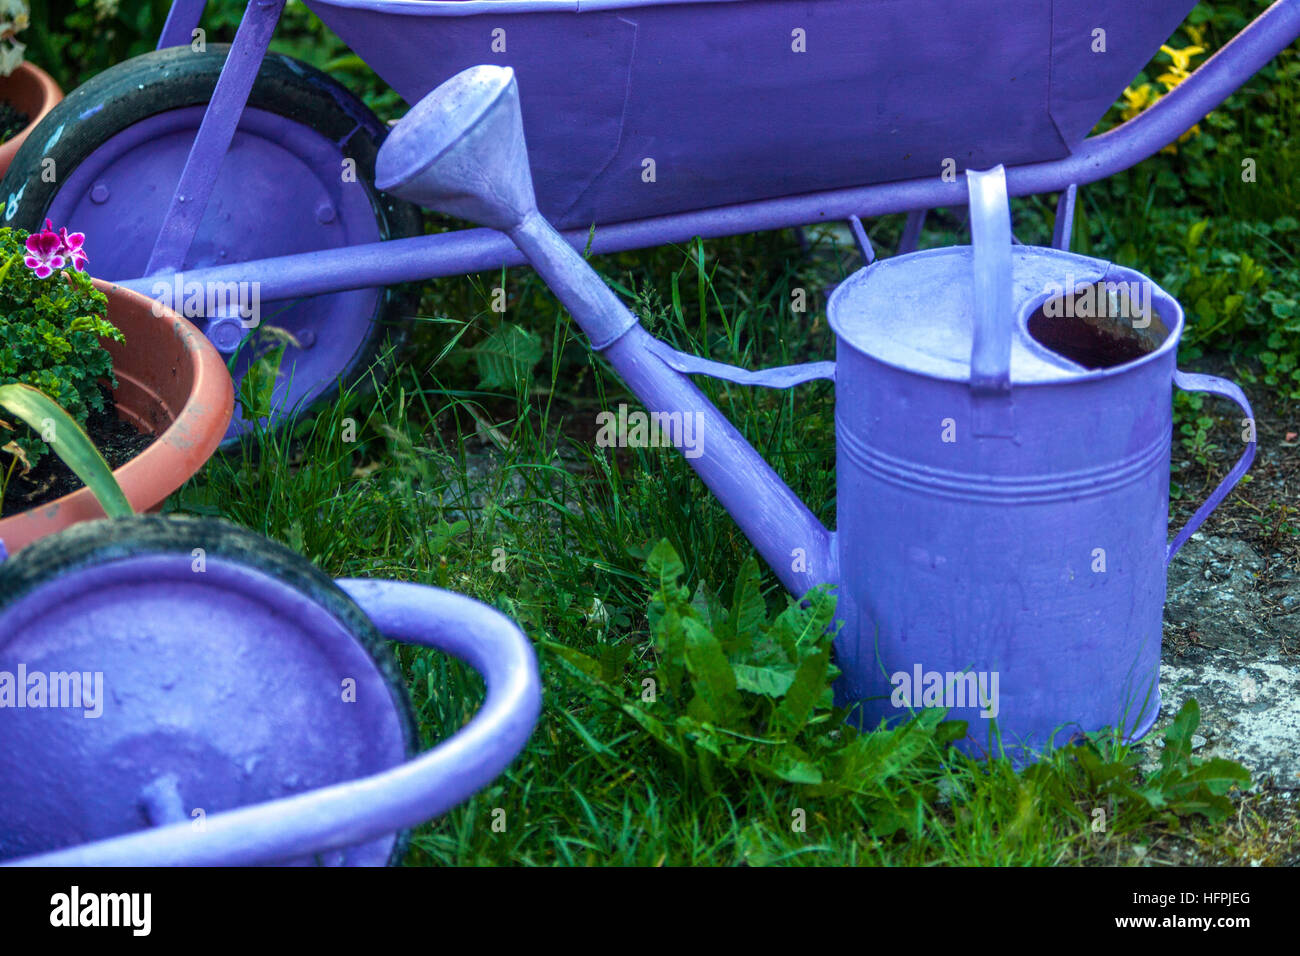 Blue painted items used in the garden, watering can and wheelbarrow - Stock Image